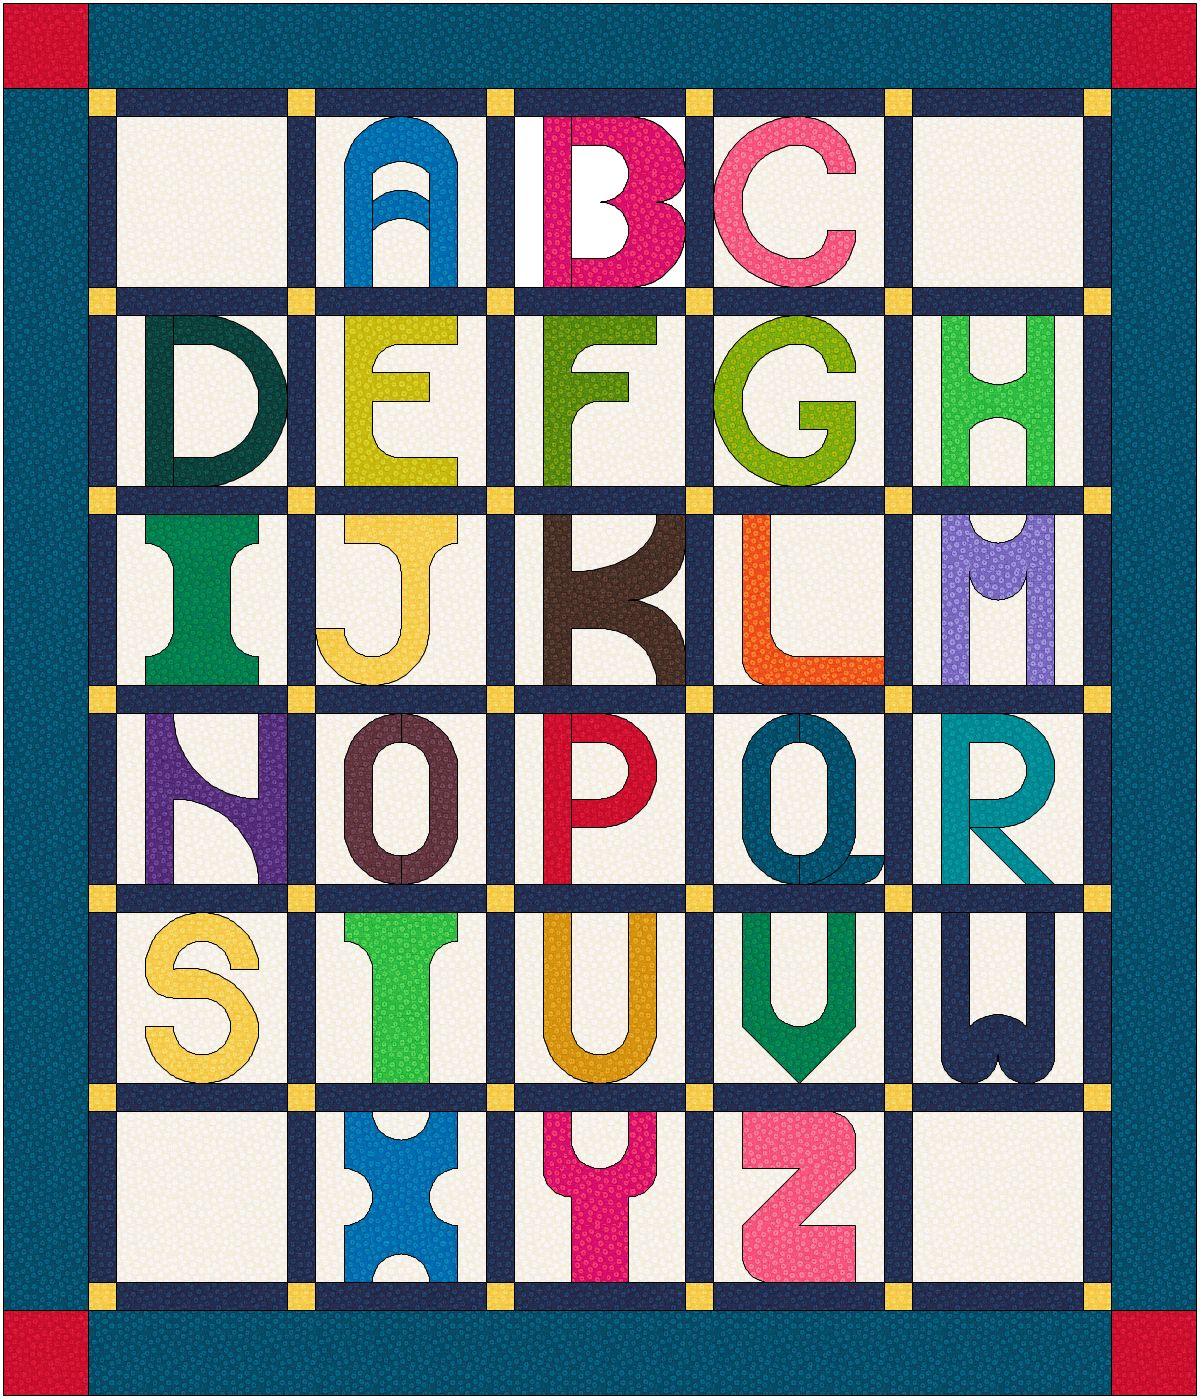 Quilt Alphabet Pattern With Slight Curve In Each Letter